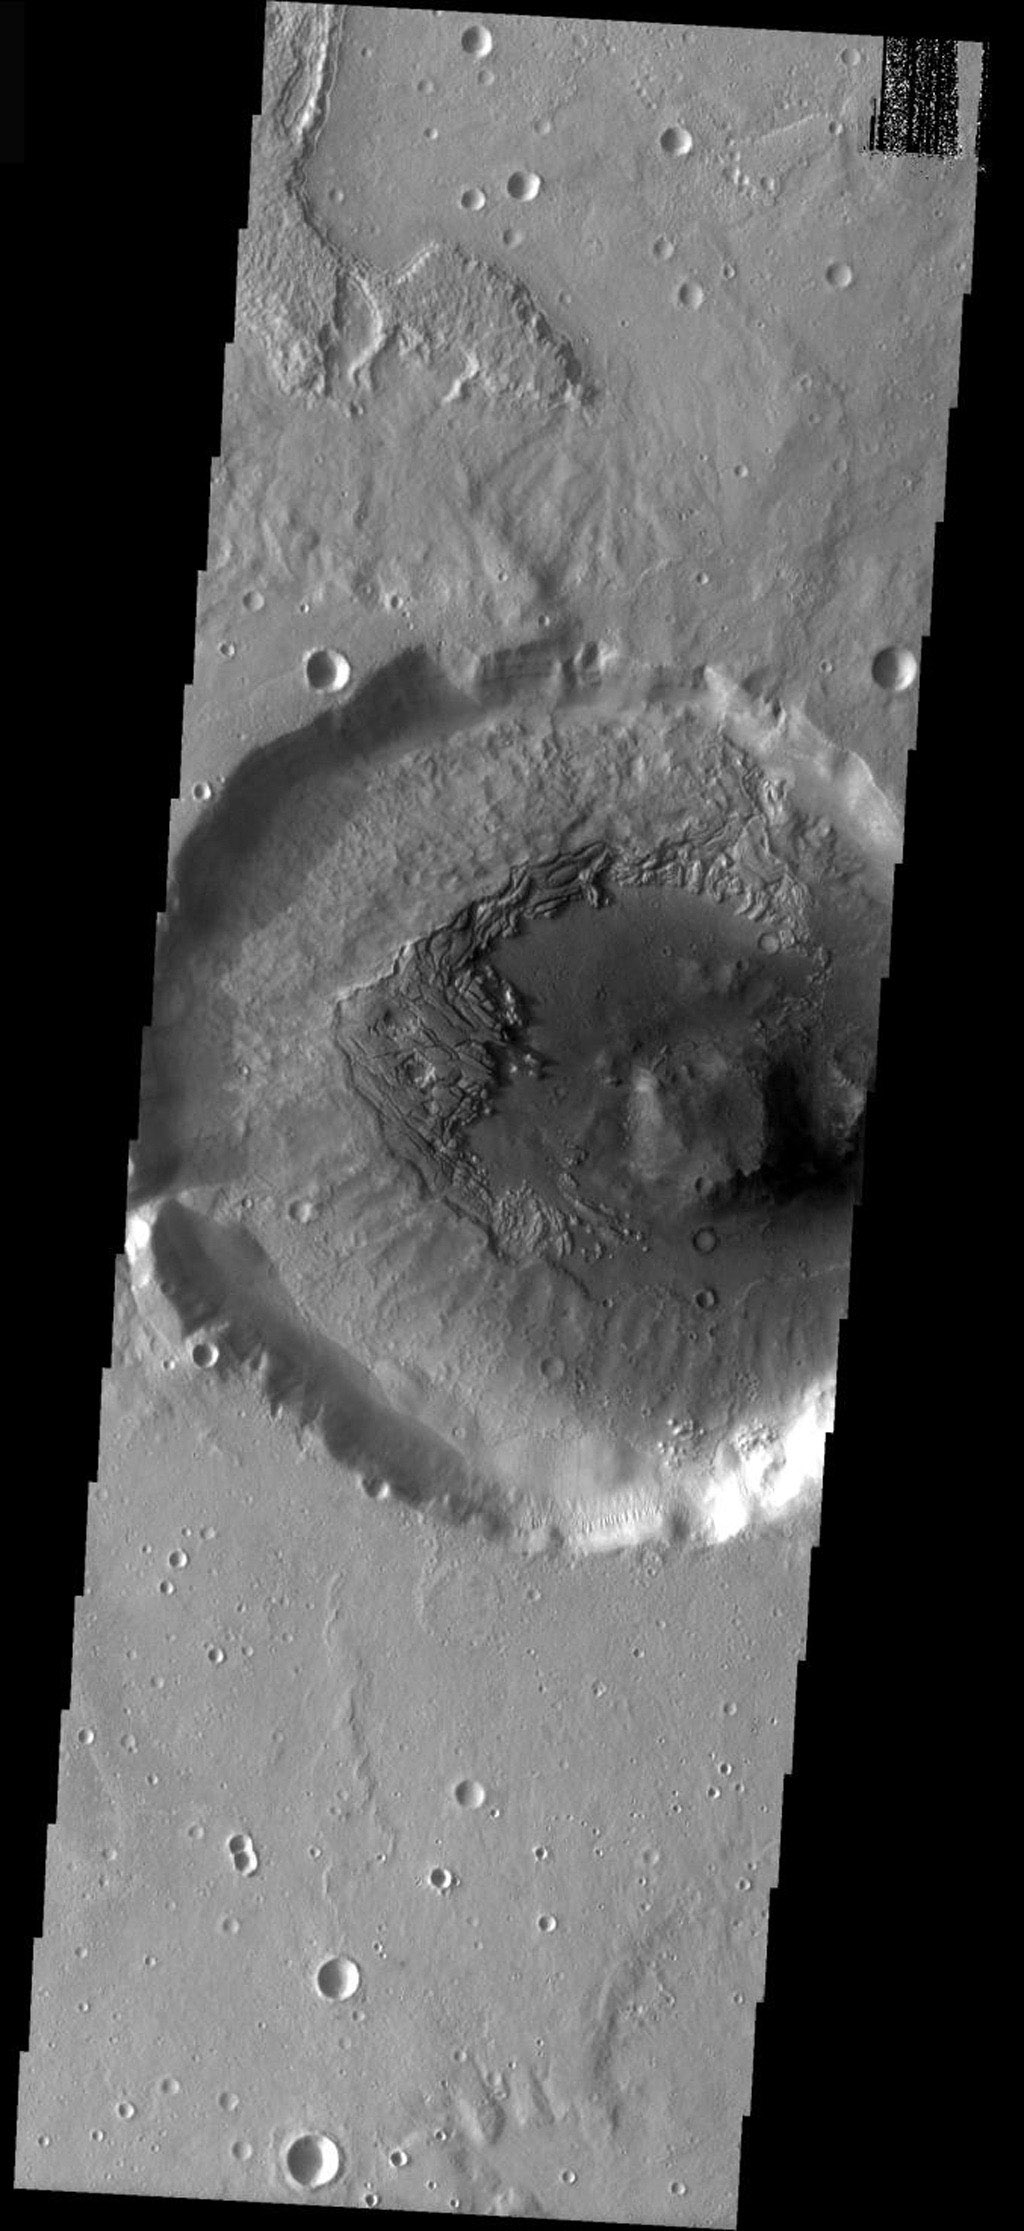 This image from NASA's Mars Odyssey shows a crater interior on Mars filled by a thick accumulation of material. The fill is now undergoing removal, exposing the floor beneath the material.